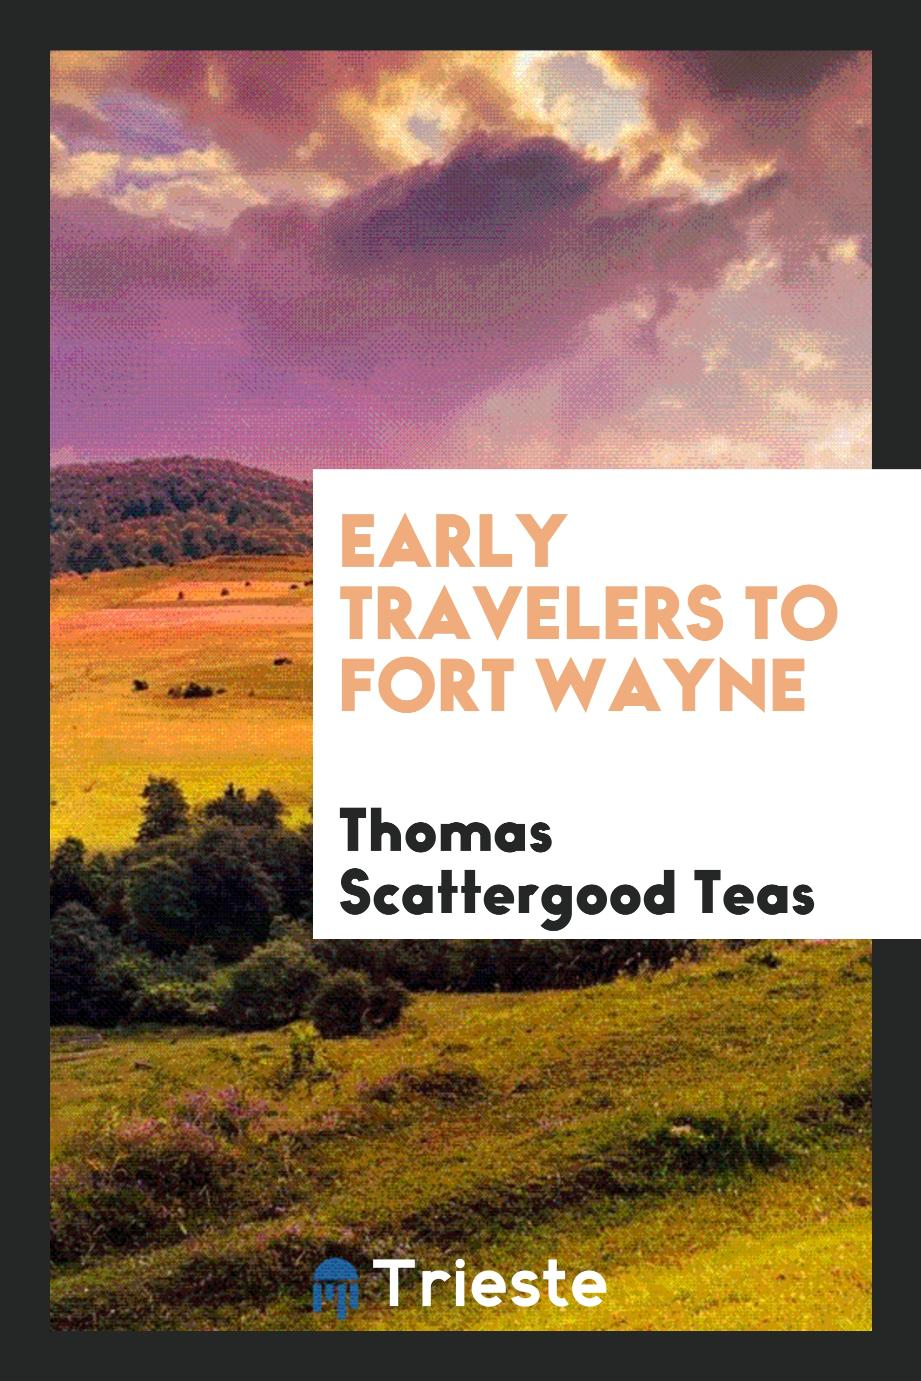 Early travelers to Fort Wayne